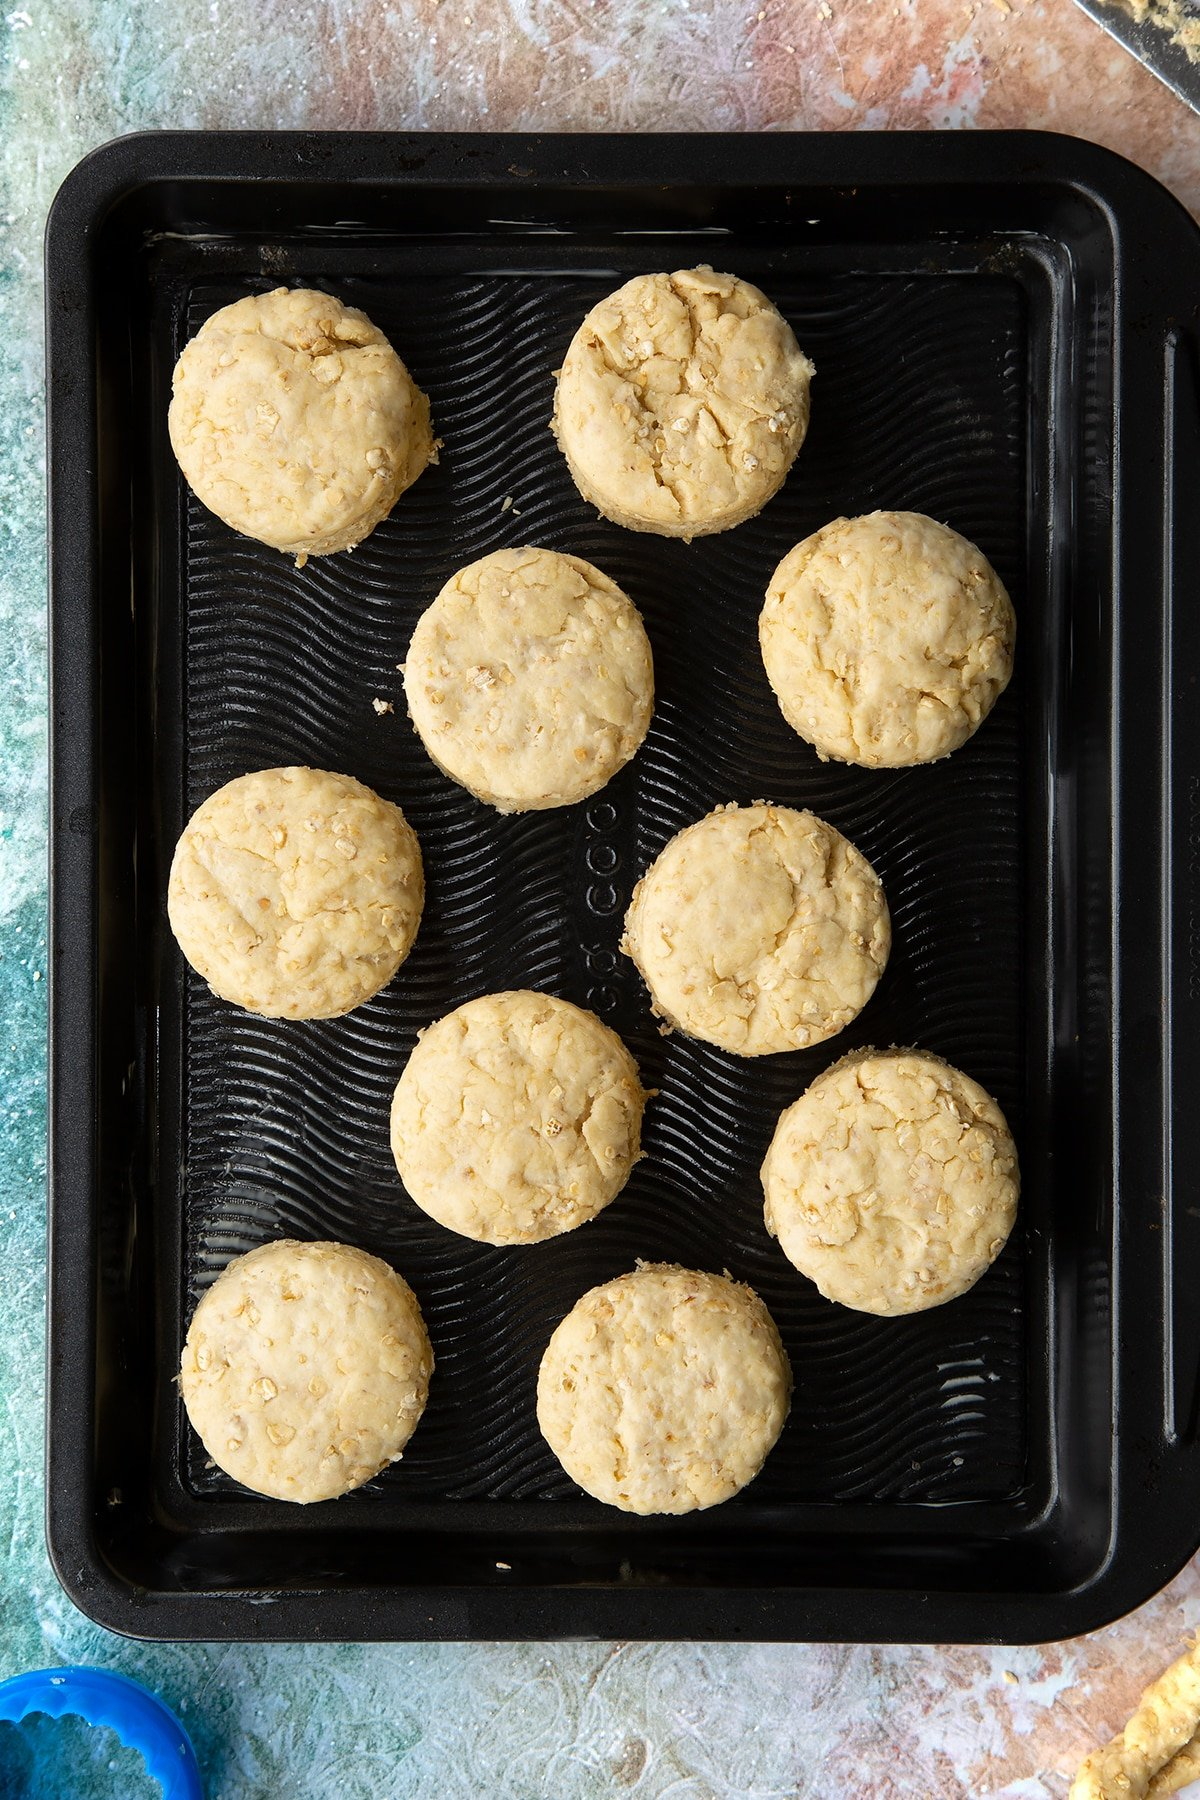 Oatmeal scone rounds of dough on a baking tray.